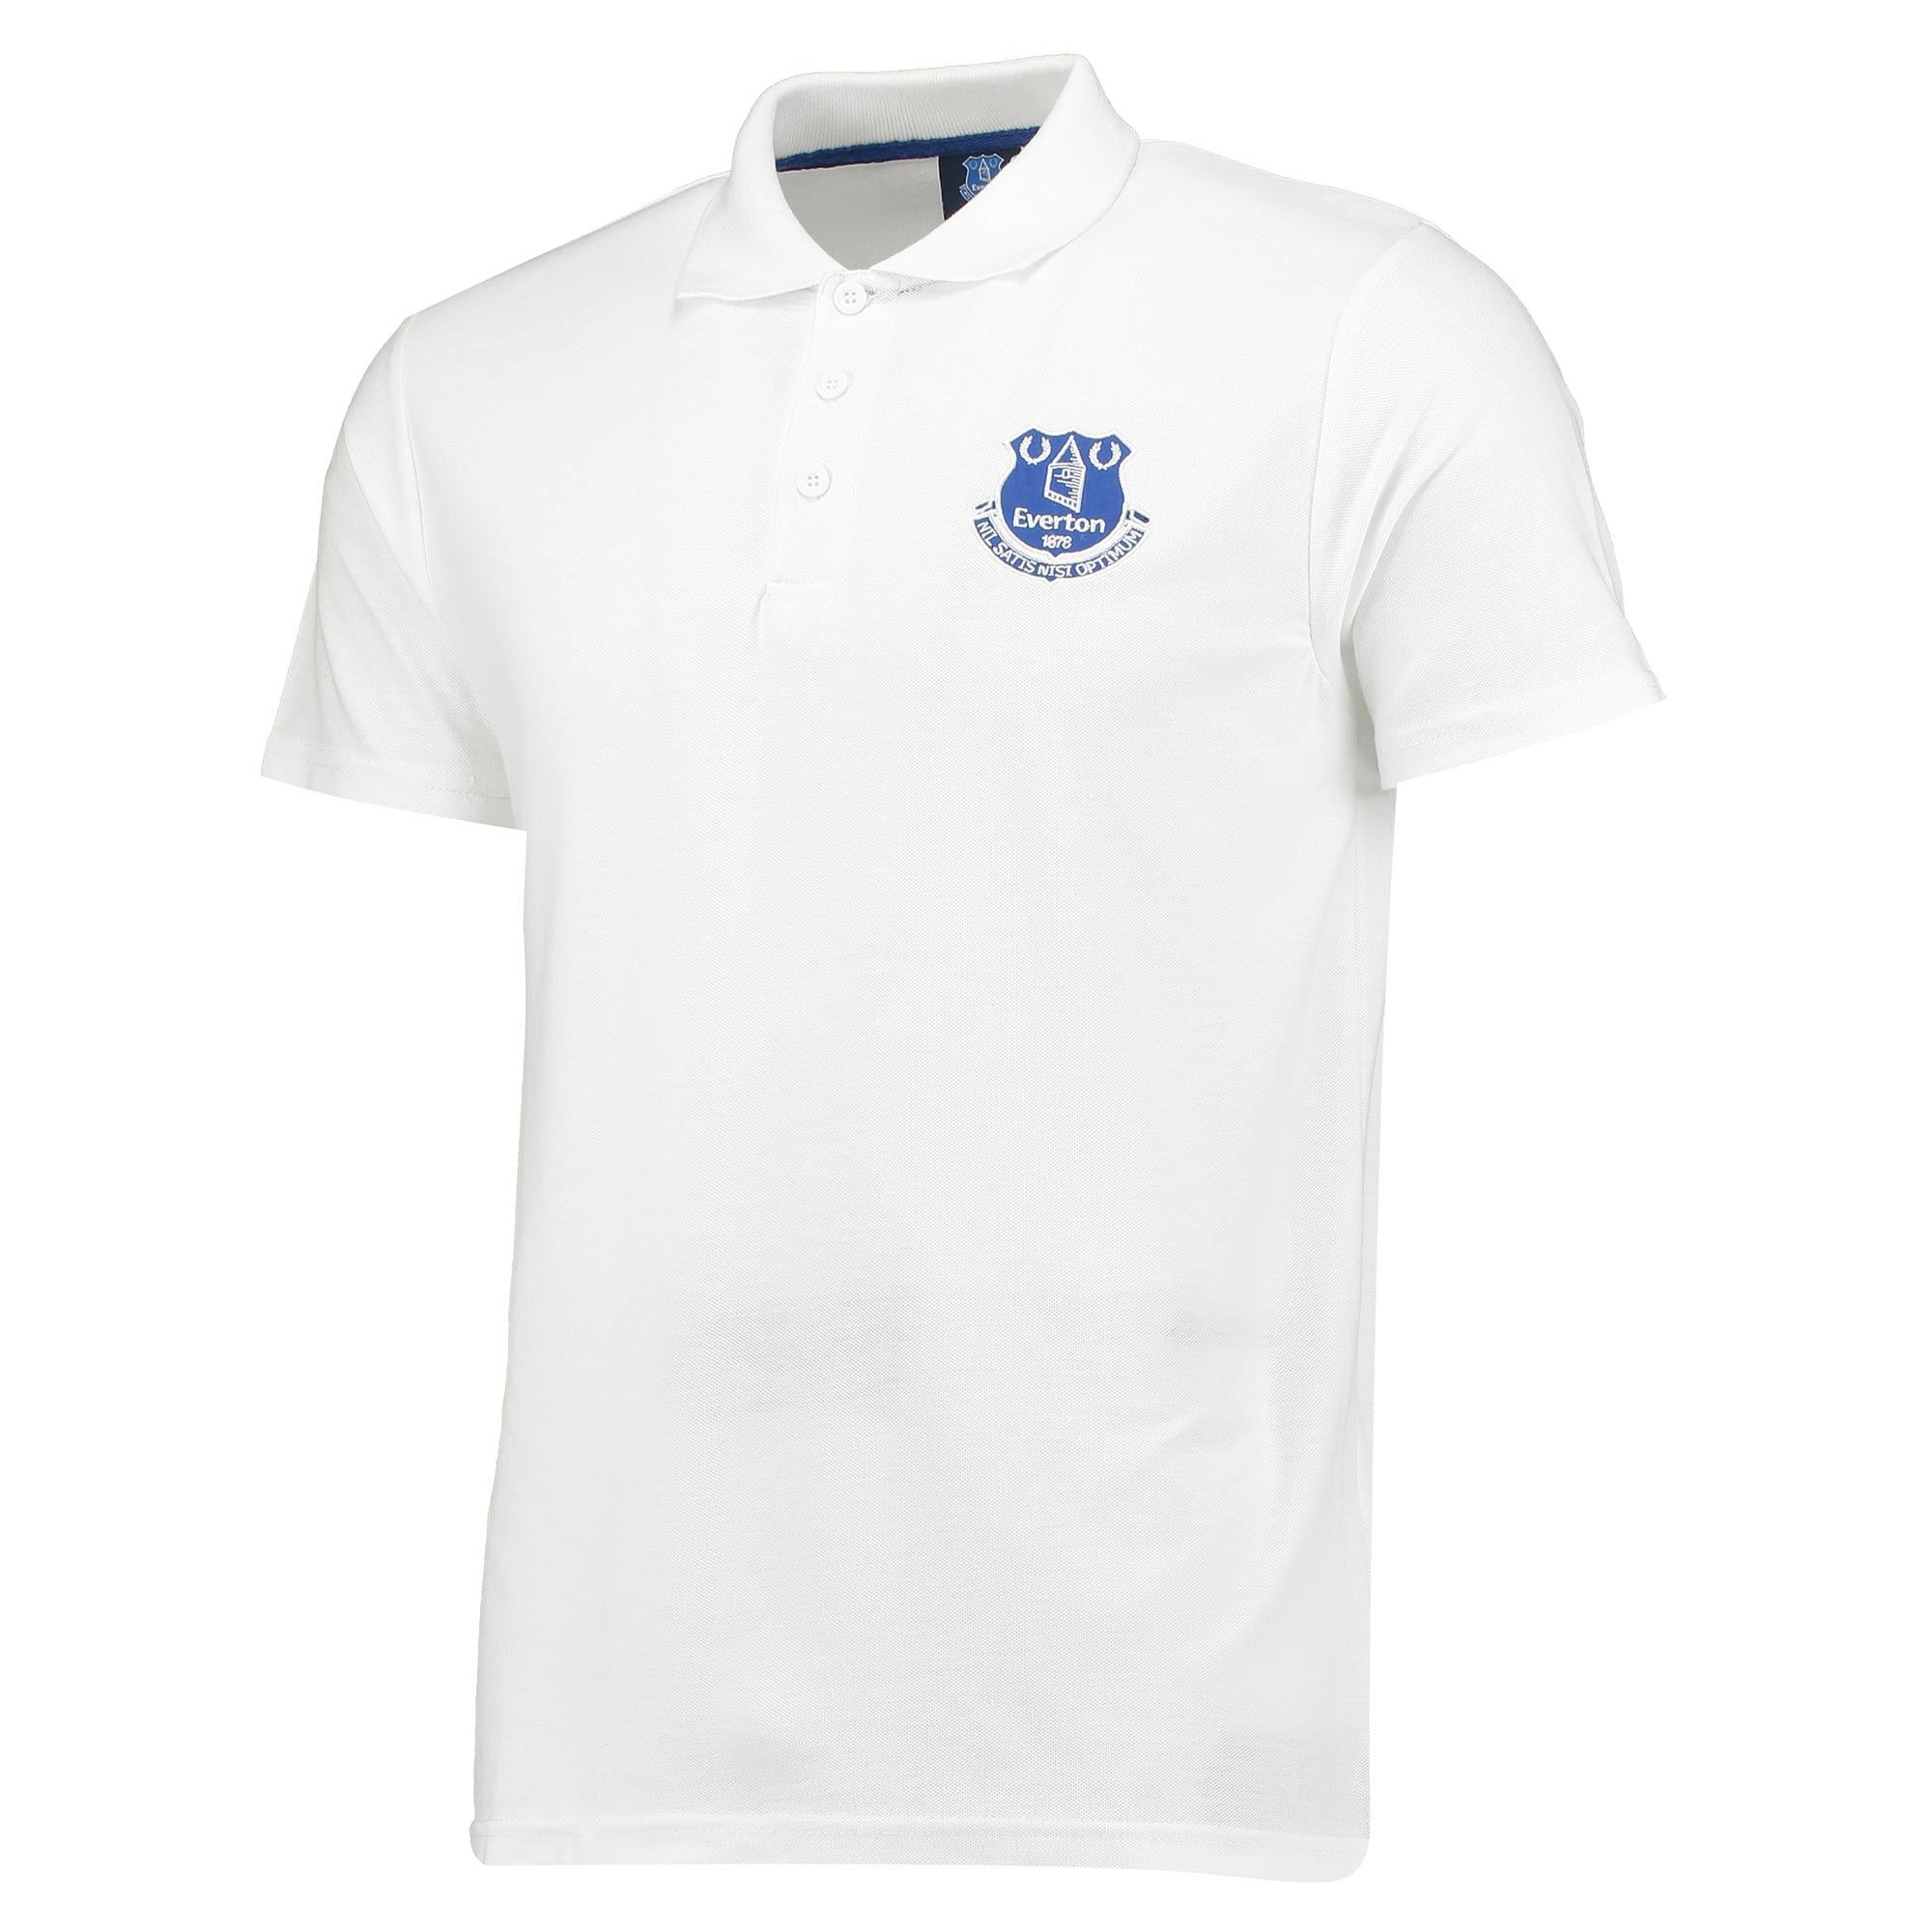 Everton Core Crest Polo Shirt - White